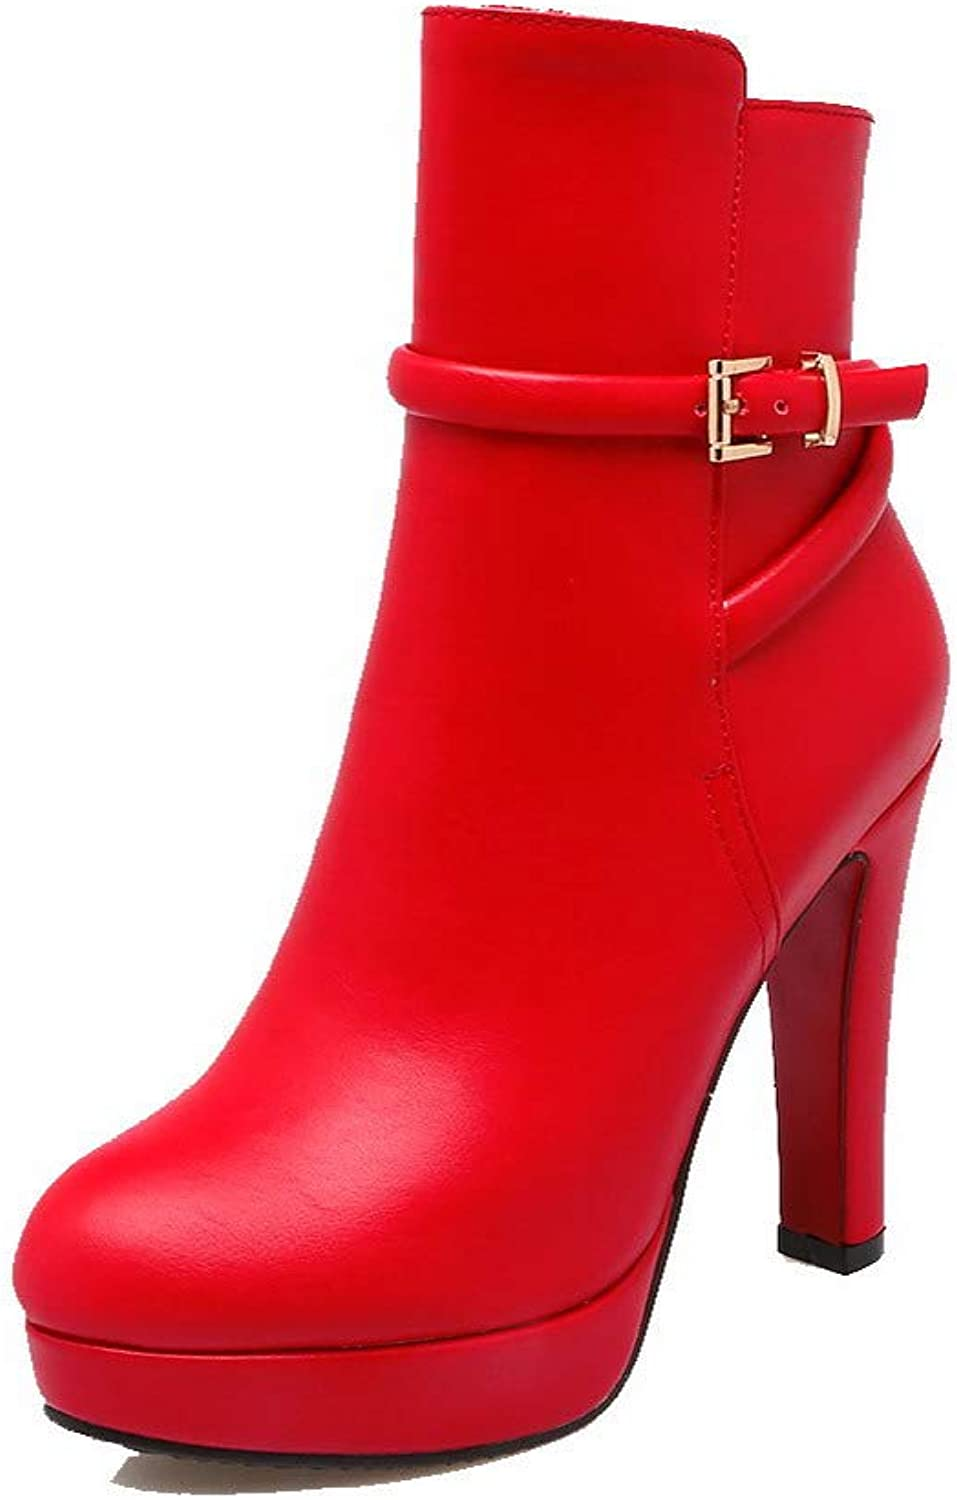 AllhqFashion Women's Round-Toe Low-Top High-Heels Solid Pu Boots, FBUXD118347